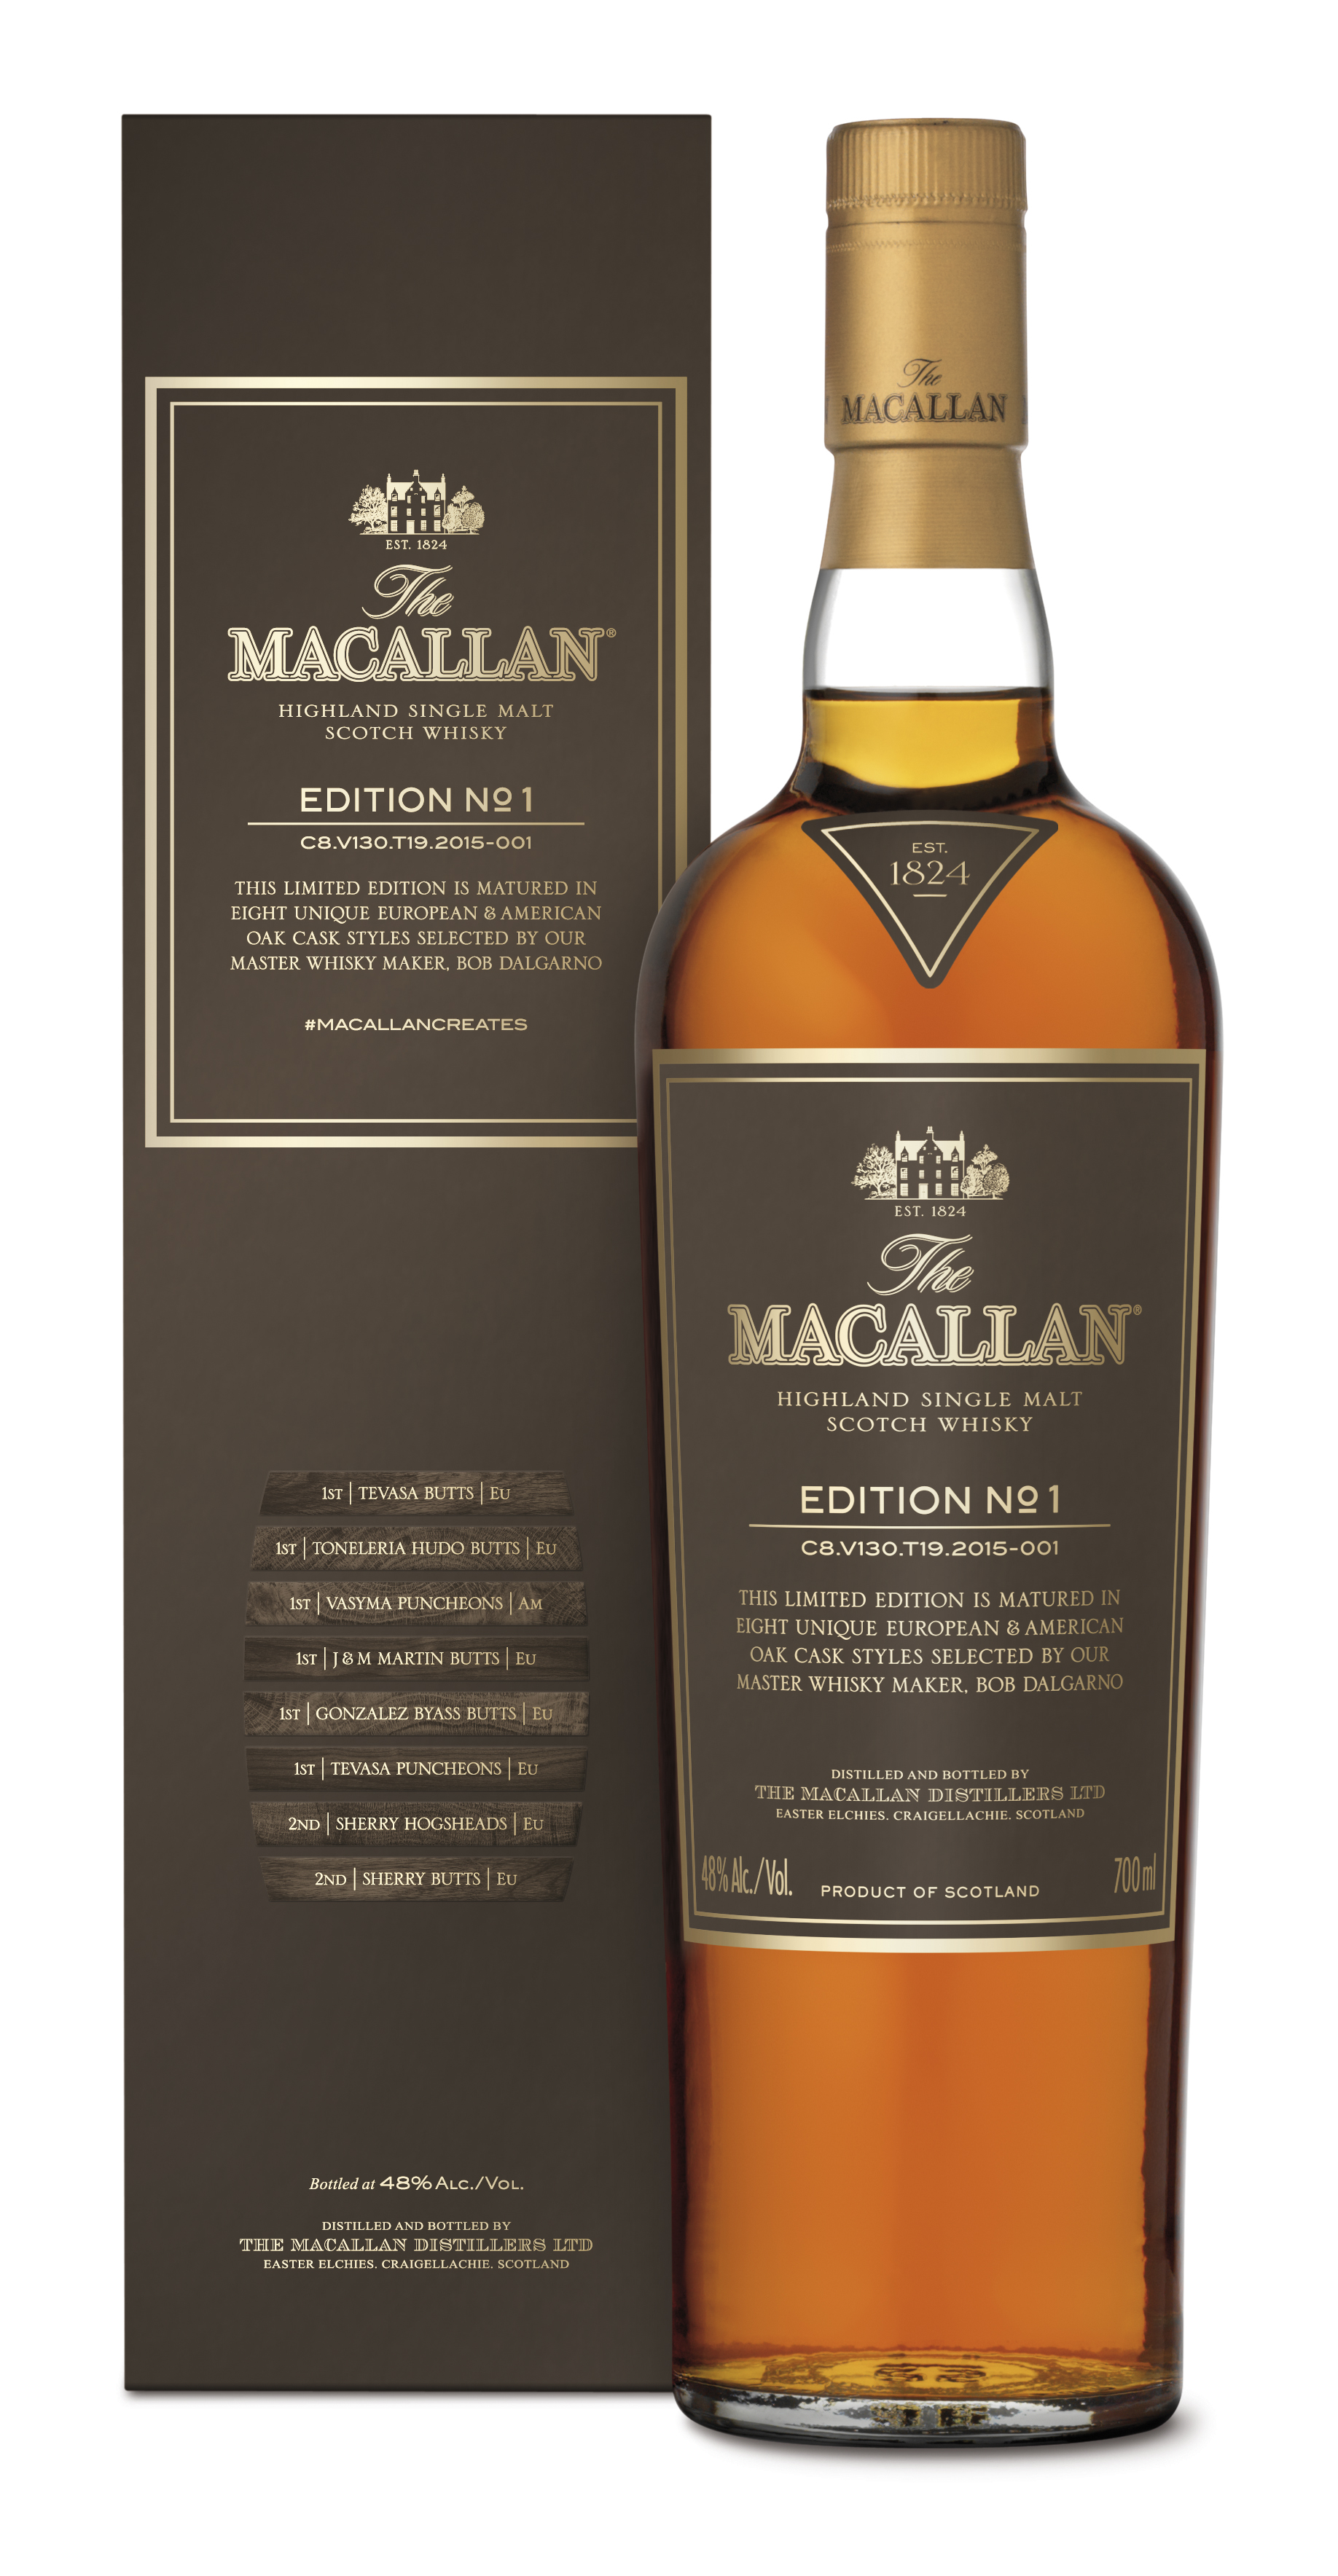 Review of The Macallan (18 year) Single-Malt Scotch Whisky ...